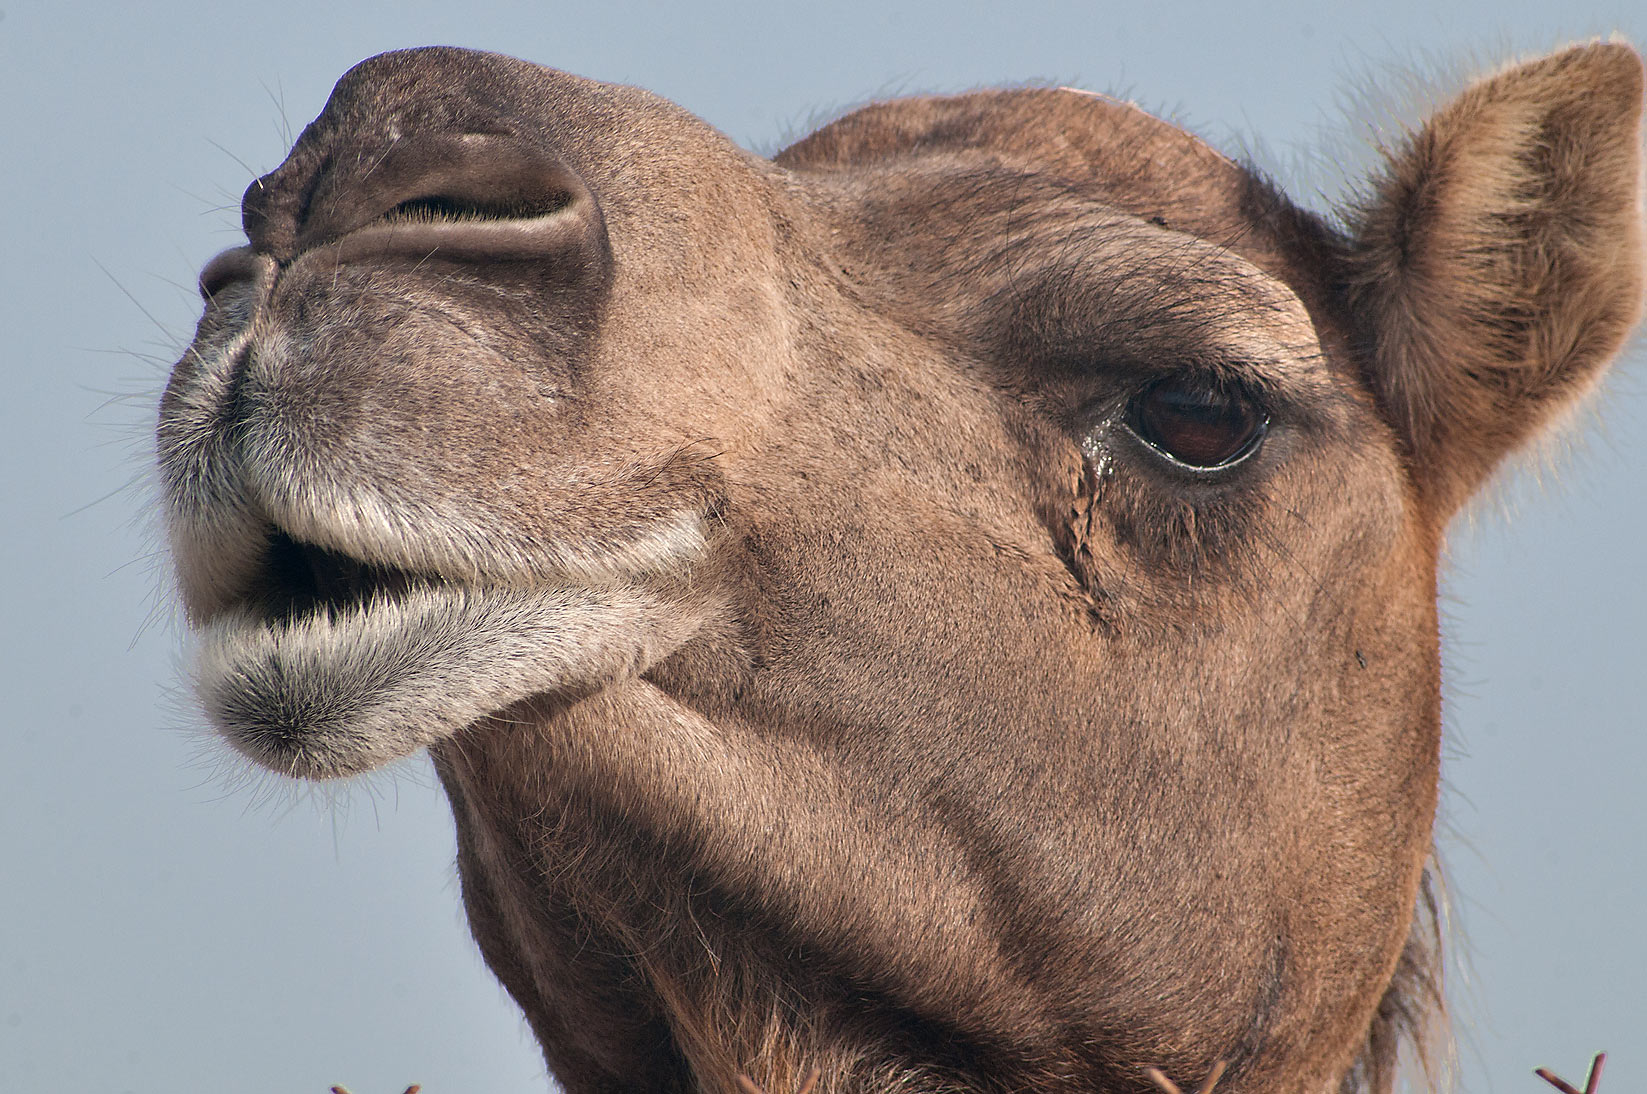 Head of brown camel in Camel Market, Wholesale Markets area. Doha, Qatar